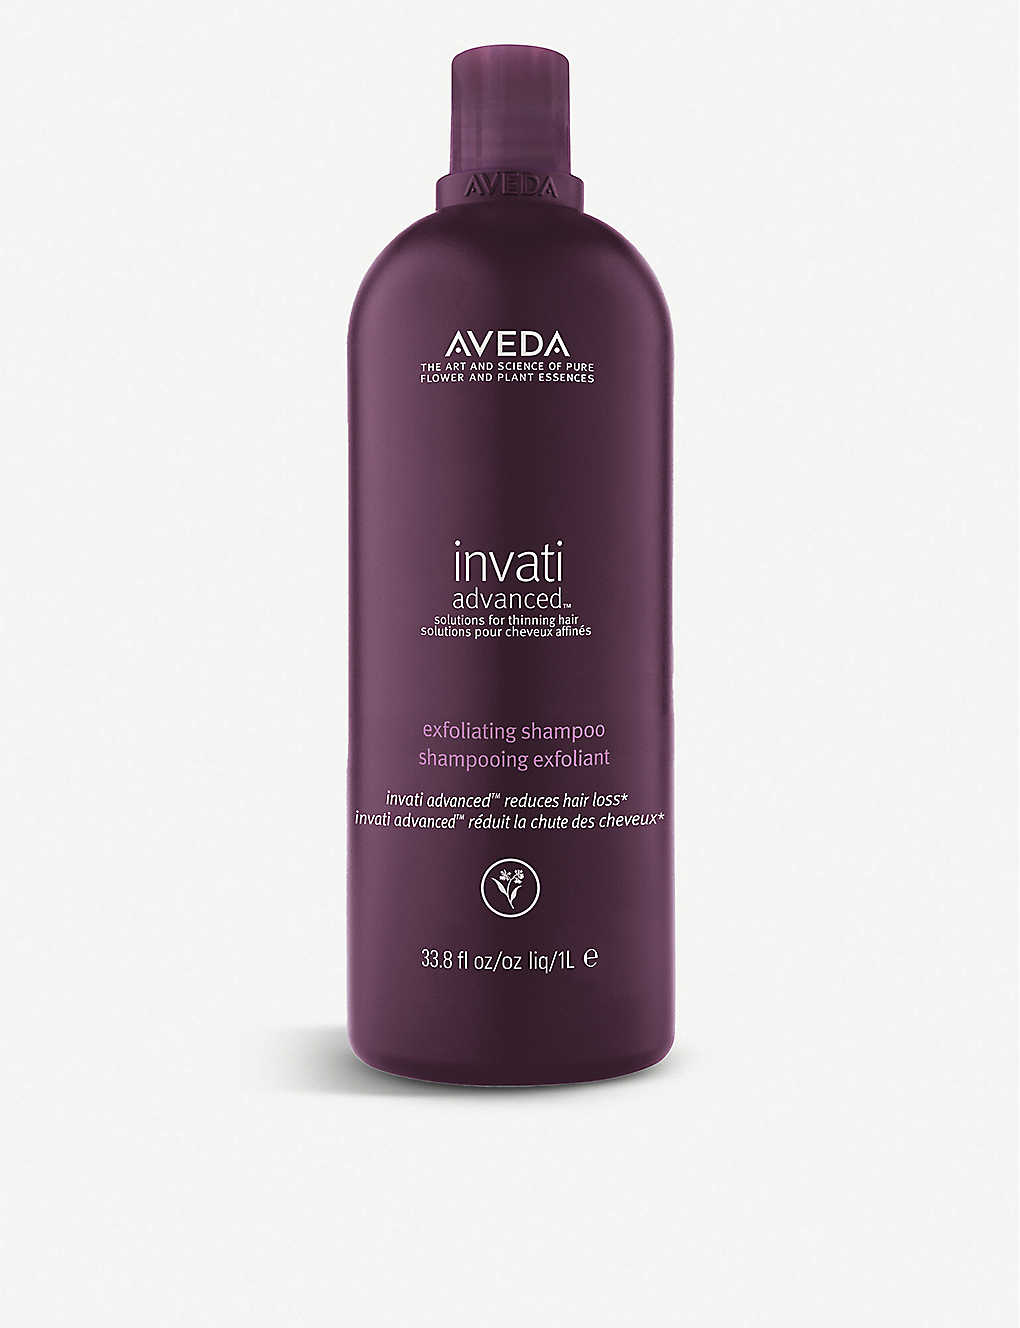 AVEDA: Invati Advanced? Exfoliating shampoo 1l